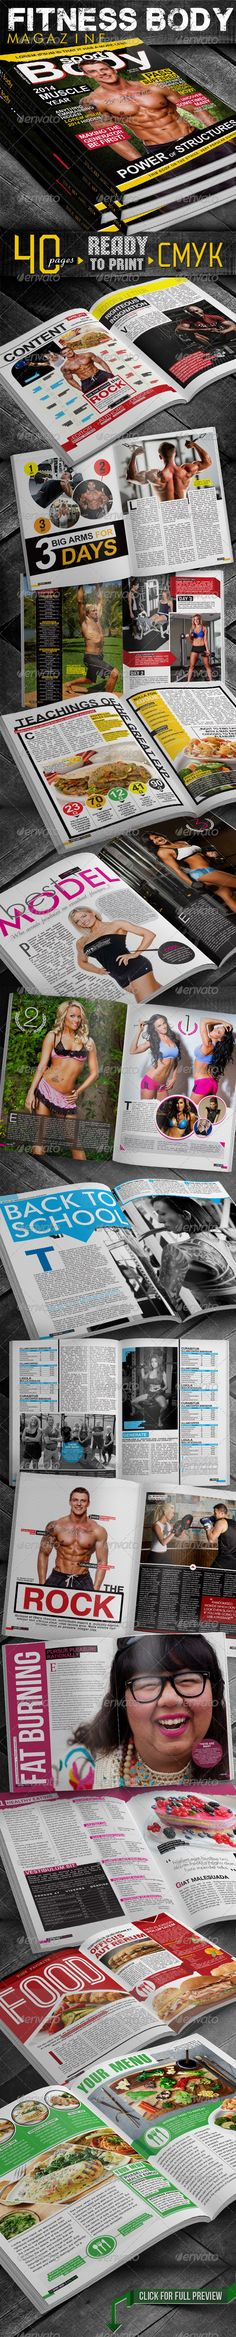 #Fitness Body #Magazine - #Magazines Print Templates Download here:https://graphicriver.net/item/fitness-body-magazine/5959520?ref=alena994